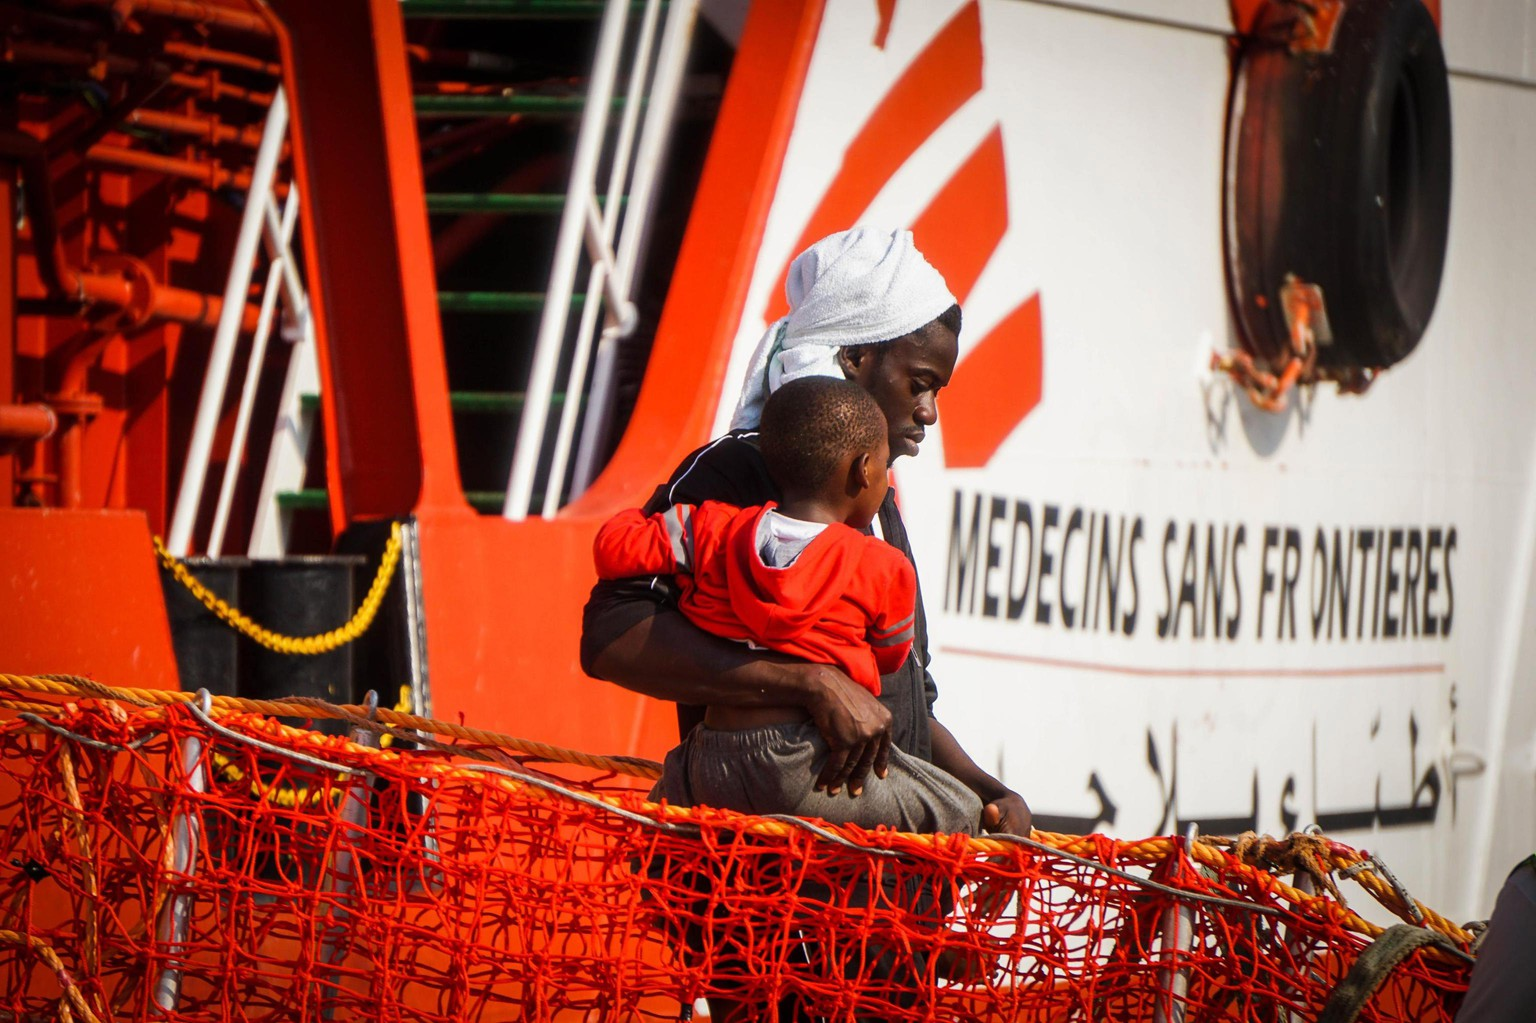 epa06086316 Migrants disembark from the humanitarian 'Vos Prudence' ship of Doctors Without Borders (Medecins Sans Frontieres, MSF) at Molo Manfredi quay, in Salerno's main harbour, Campania Region, southern Italy, 14 July 2017. The ship docked in the port of Salerno carrying 935 migrants - 793 men, 125 women, seven of whom are pregnant and 16 children, including two infants - media reported.  EPA/CESARE ABBATE